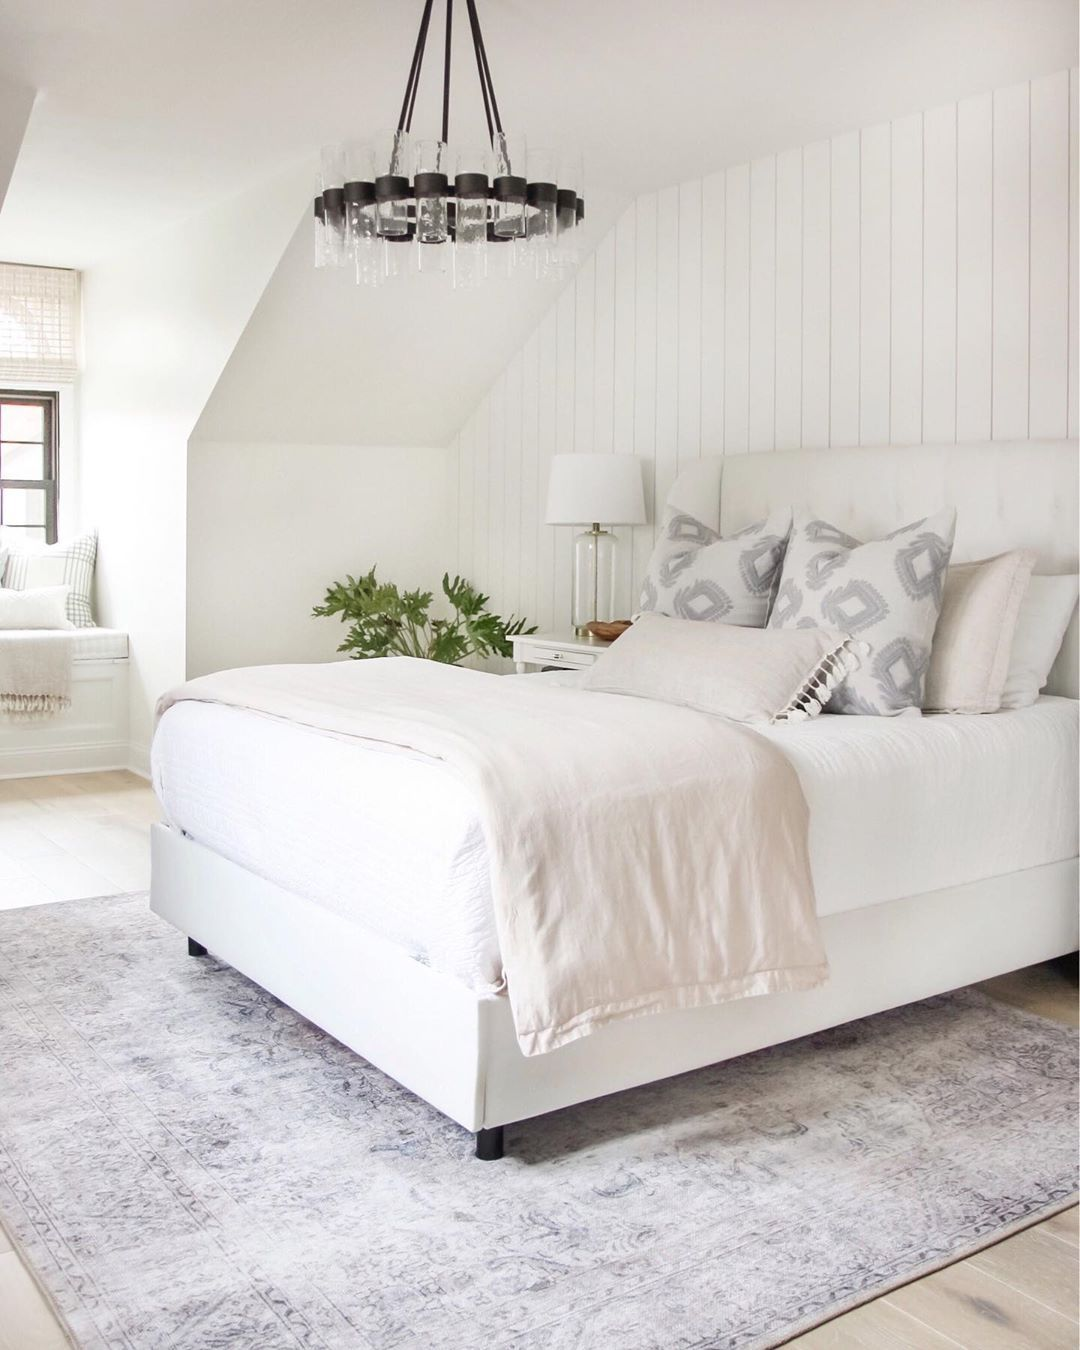 Michelle On Instagram Another Change I Made To Our Master Bedroom Recently Was The Addition Of This Loloirugs Master Bedroom Home Decor Master Bedroom Paint Home tour master bedroom after